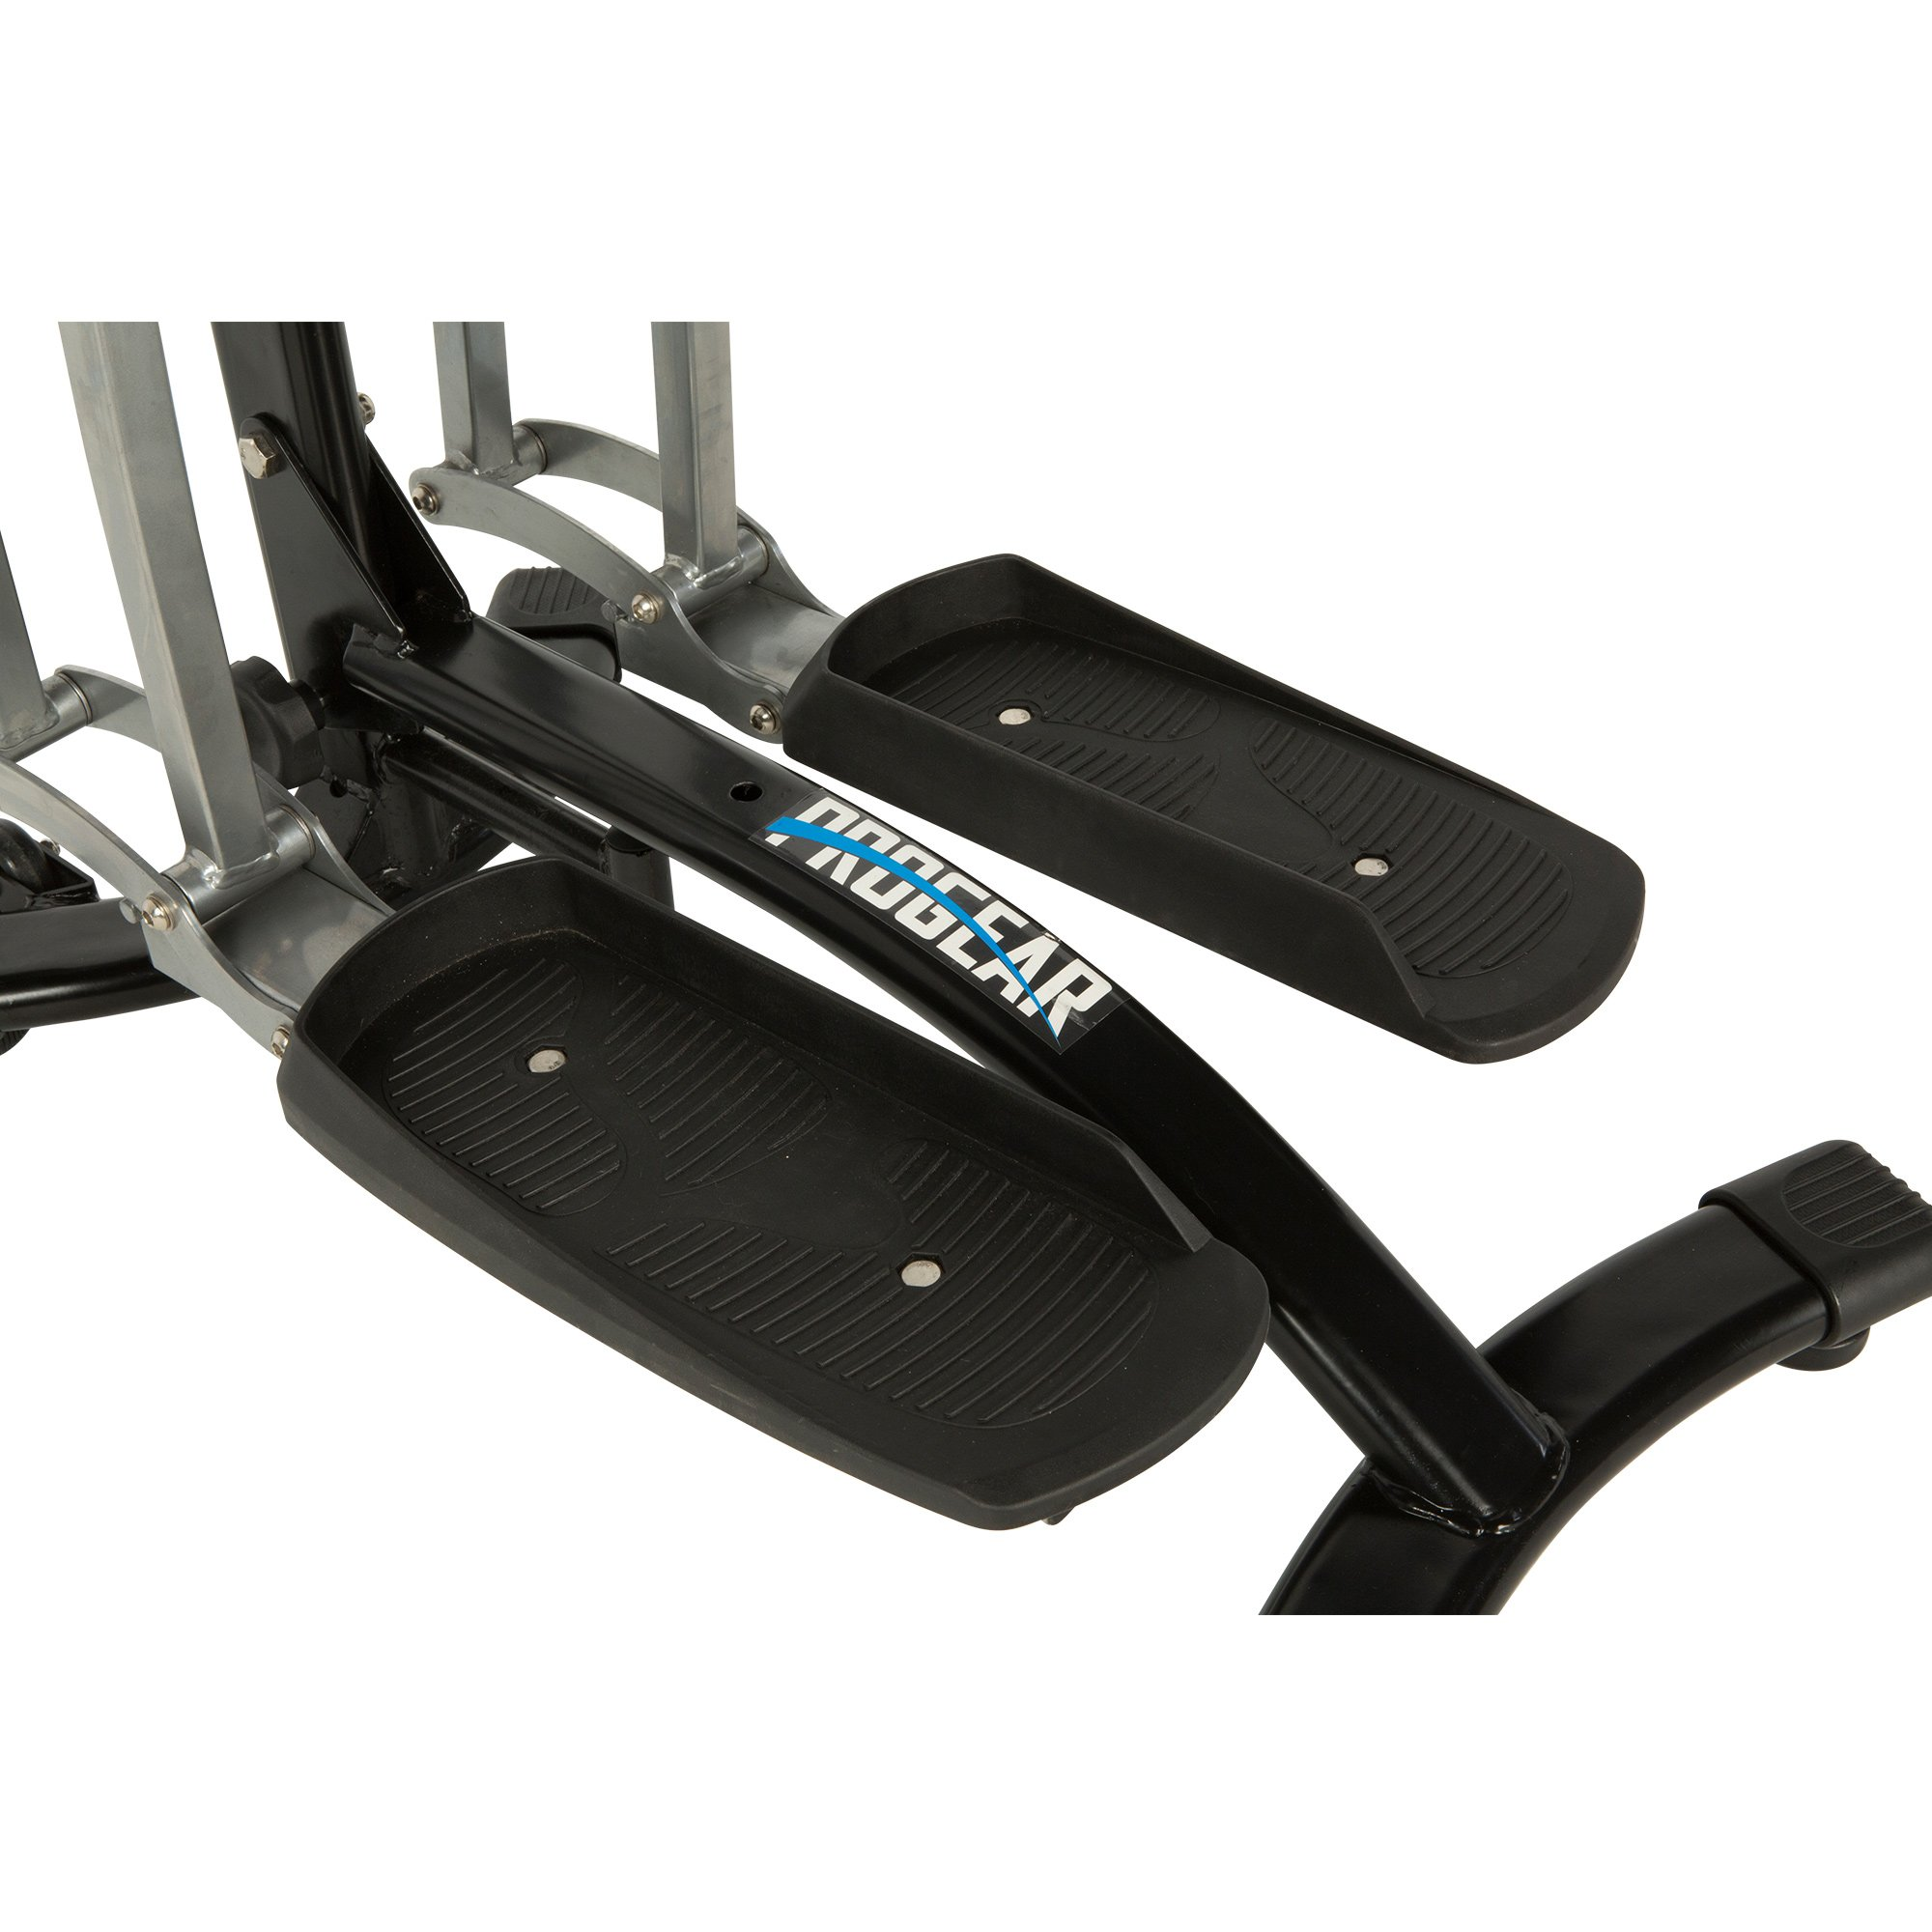 PROGEAR Dual Action 360 Multi Direction 36'' Stride Air Walker LS with Heart Pulse Sensors by ProGear (Image #4)